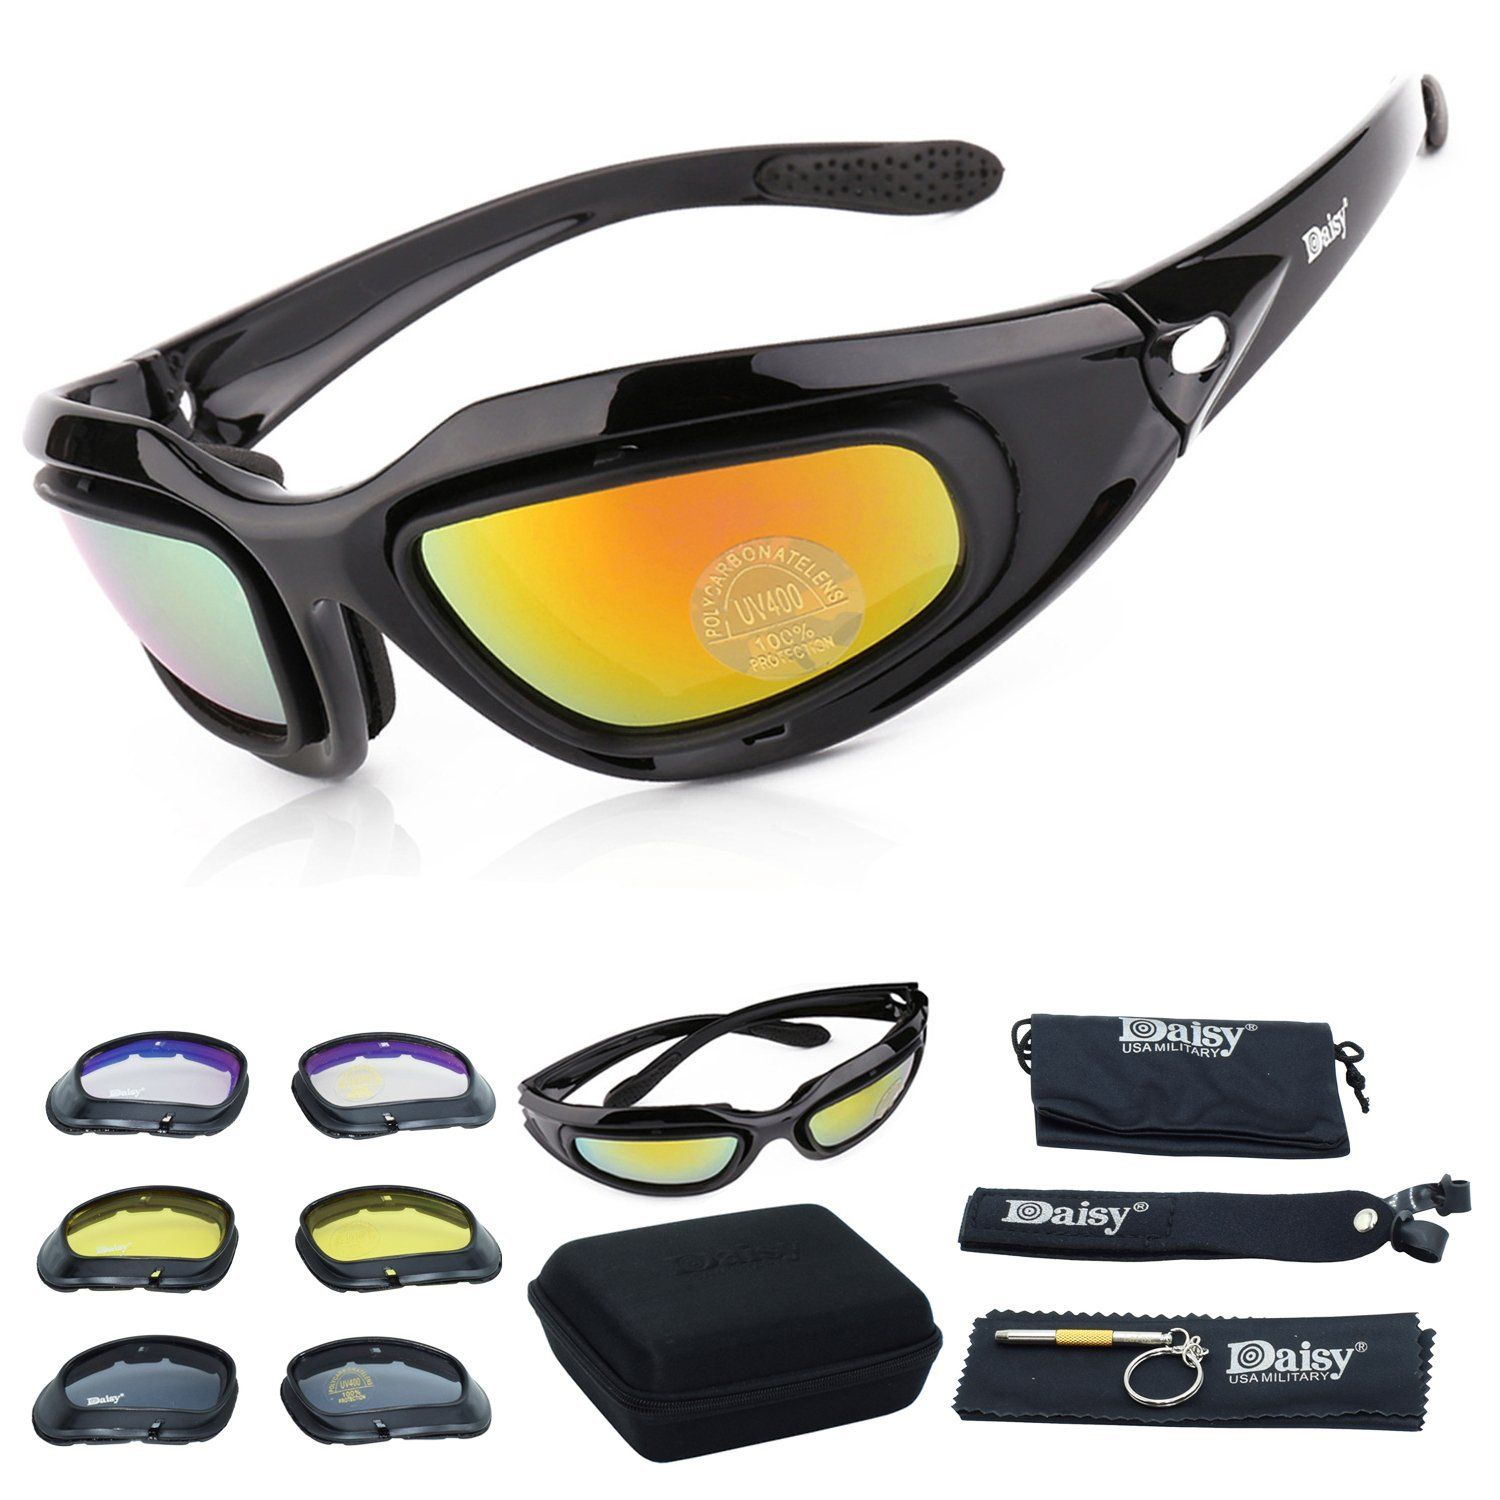 25080866779 Motorcycle Riding Glasses Kit with 4 lens Colors  Easy swap lens kit (1  full kit with 9 accessories)